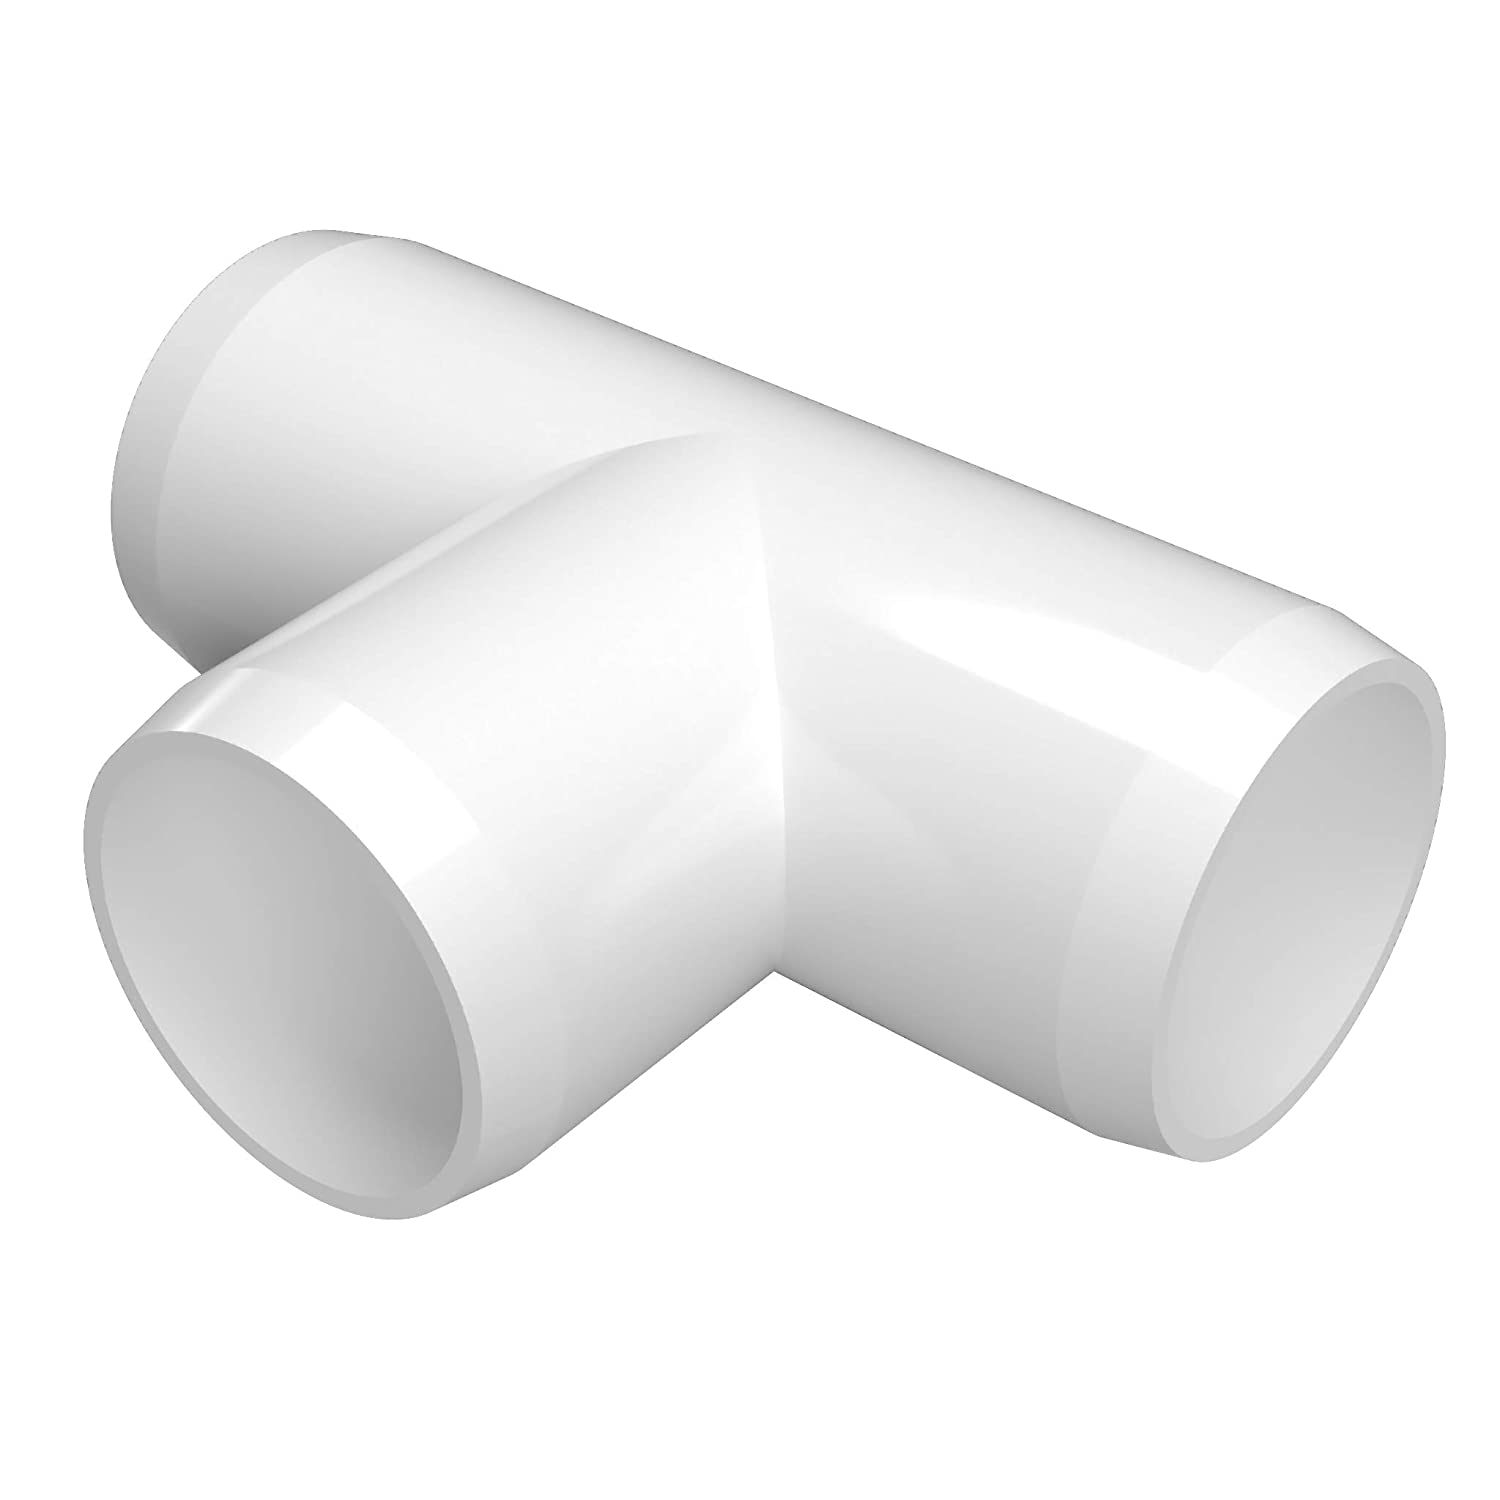 "FORMUFIT F034TEE-WH-8 Tee PVC Fitting, Furniture Grade, 3/4"" Size, White (Pack of 8)"